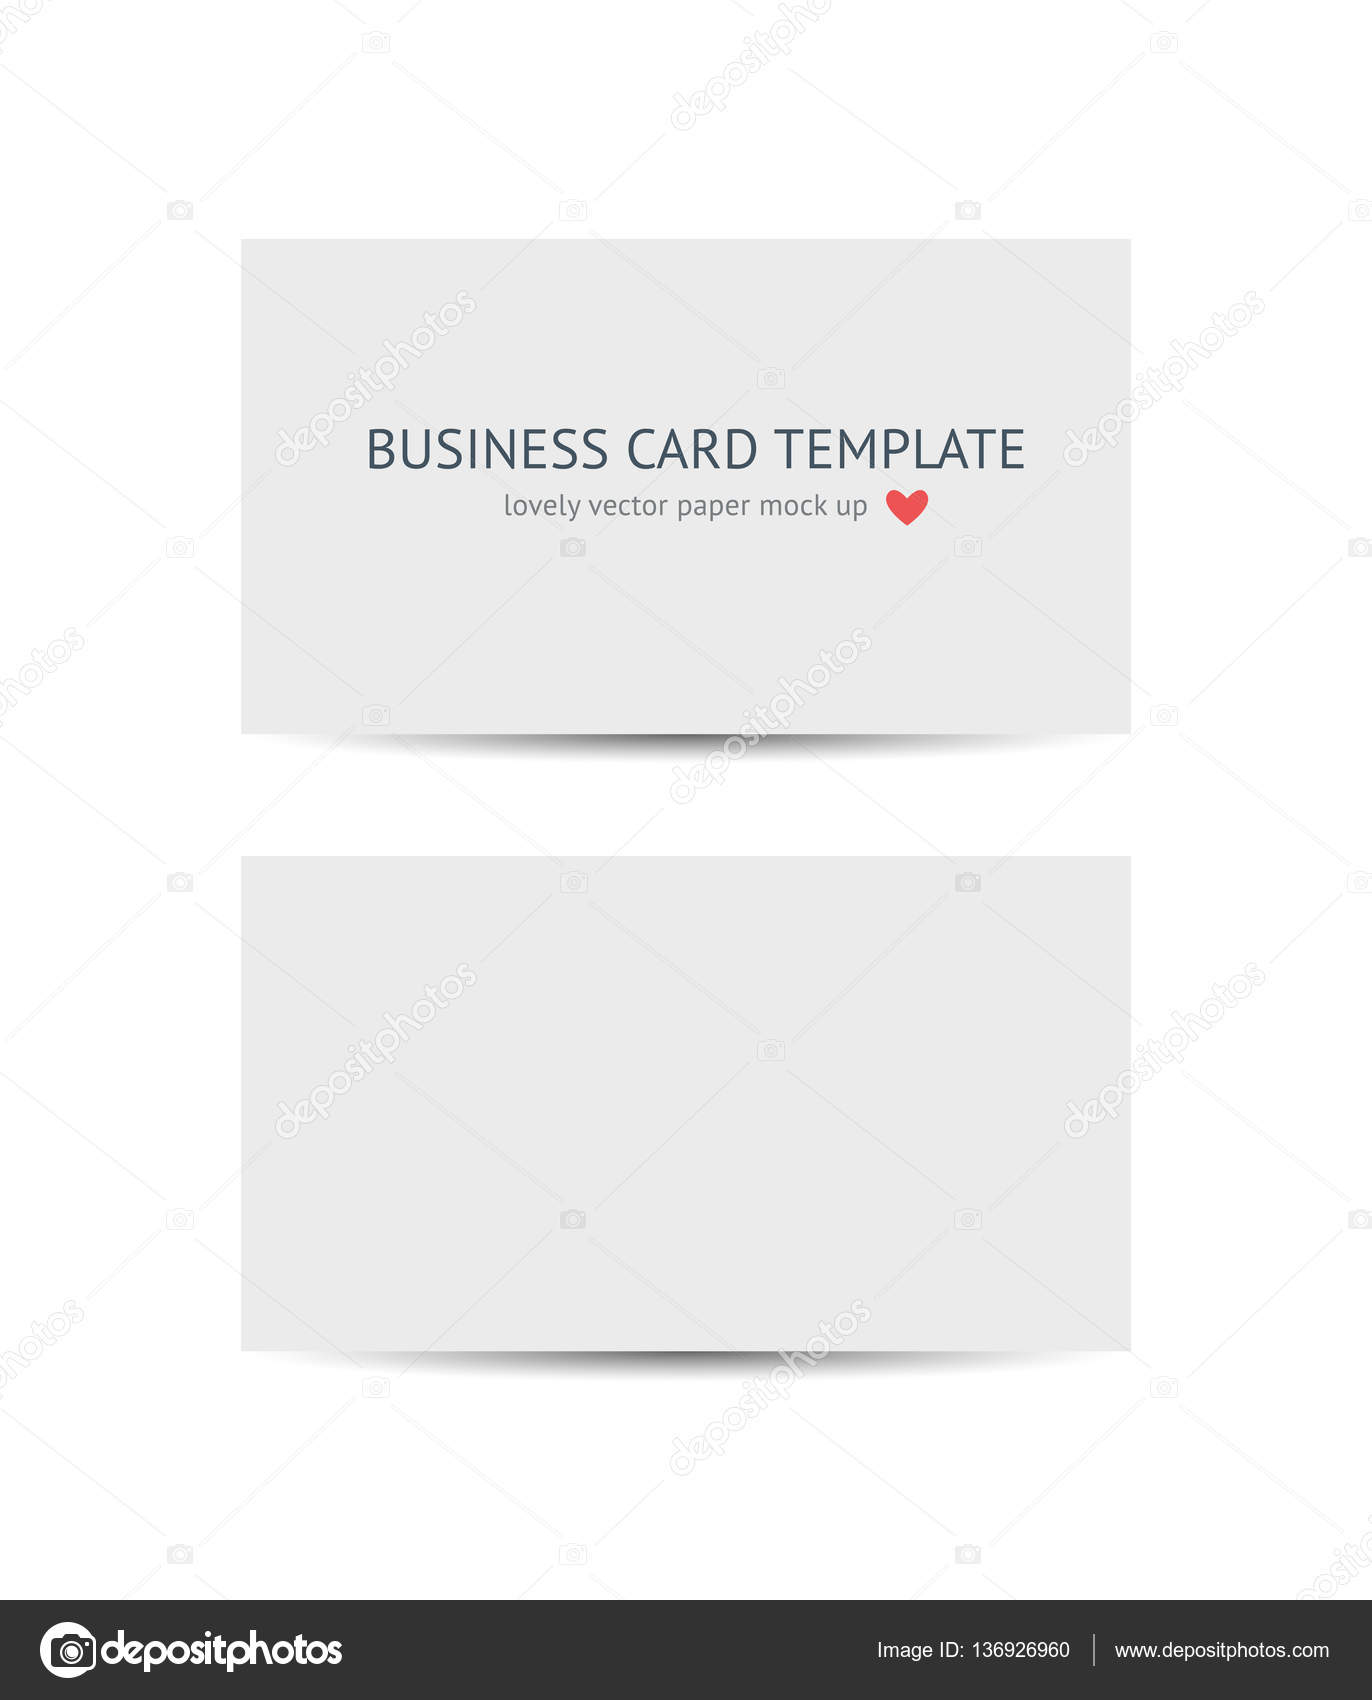 Business cards blank mockup template stock vector voinsveta business cards blank mockup template stock vector reheart Image collections